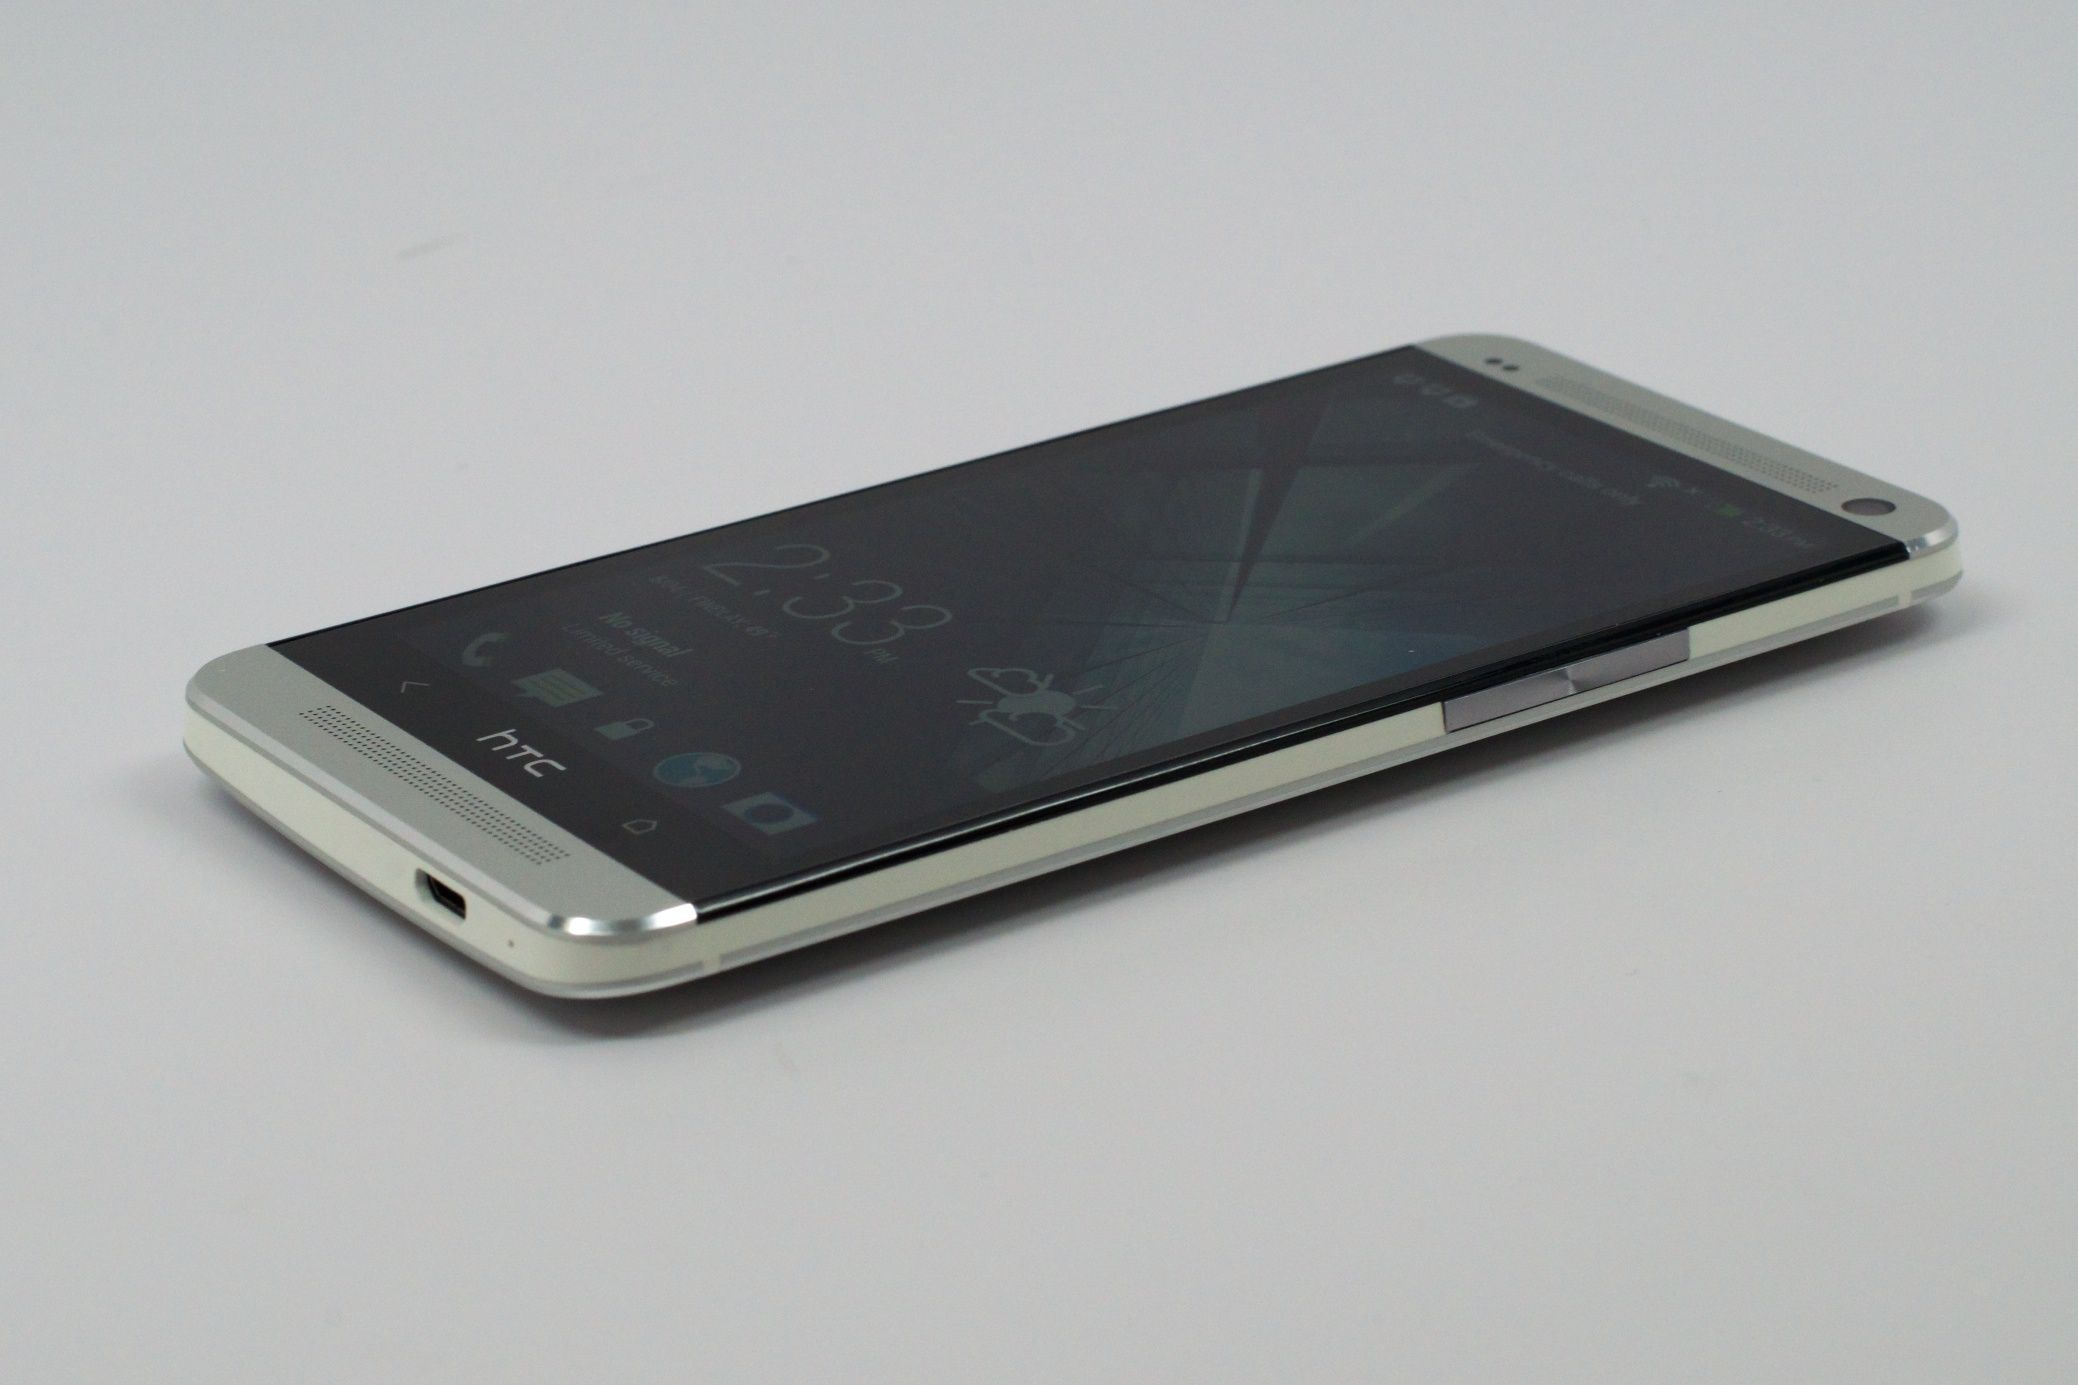 HTC One Android 4.2 Update,HTC one,HTC one Review,HTC one pros and cons,HTC,HTC latest model,HTC one features,Best smartphone,HTC smartphones,iPhone 5,Samsung galaxy s4,s4,latest smartphone,best smartphone,smart phone,best mobile,new smartphones, latest smartphones of 2013